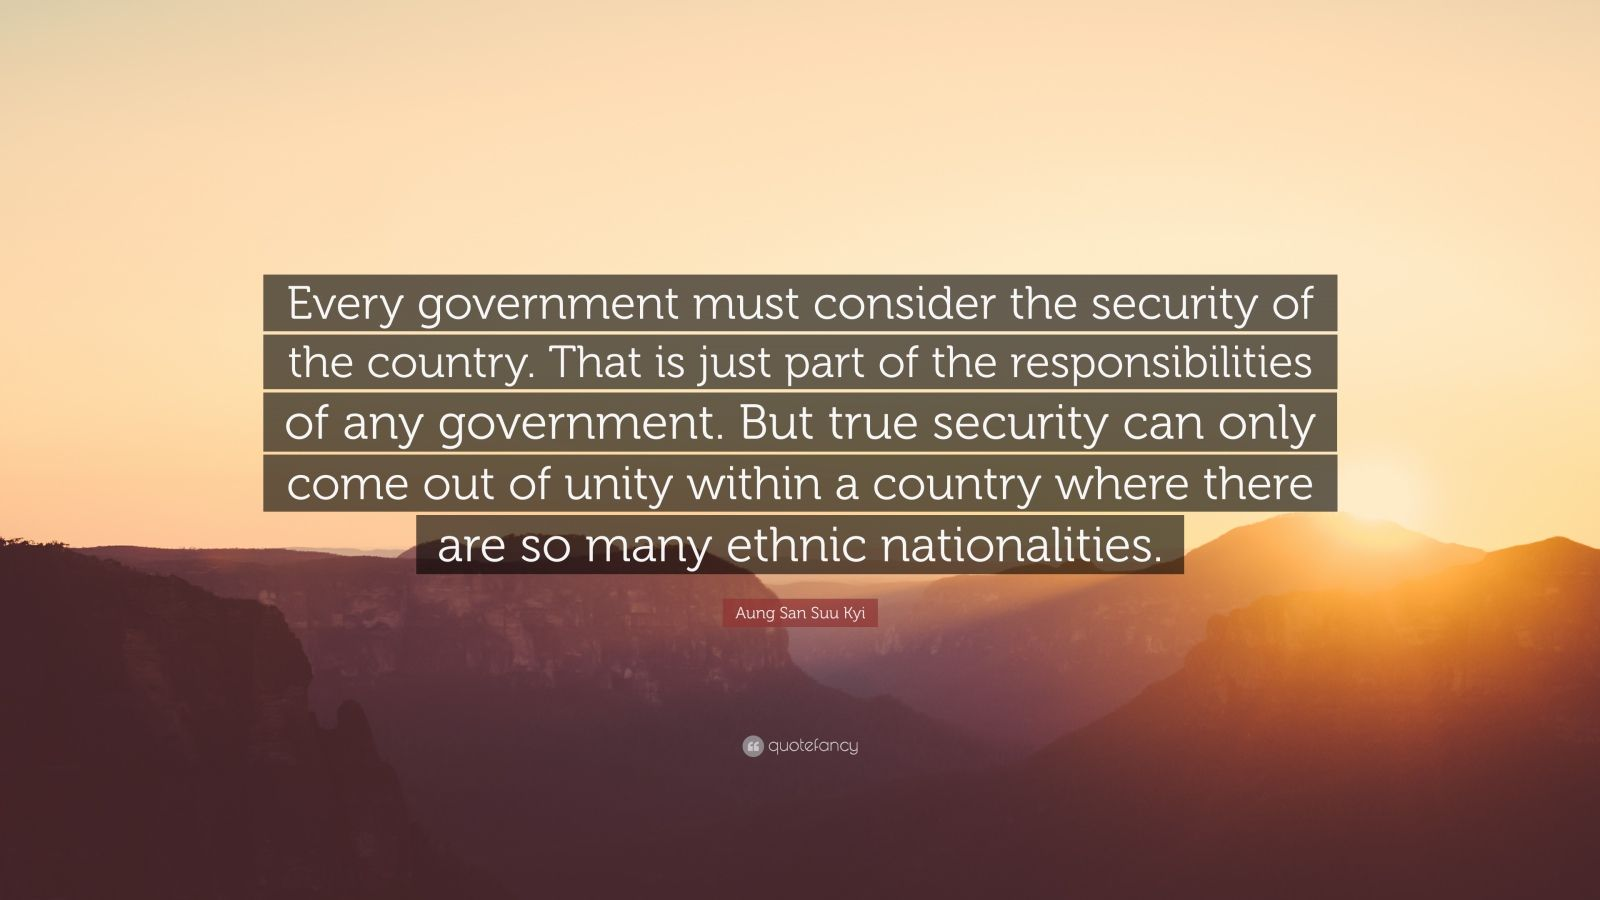 """Aung San Suu Kyi Quote: """"Every government must consider the security of the country. That is just part of the responsibilities of any government. But true security can only come out of unity within a country where there are so many ethnic nationalities."""""""